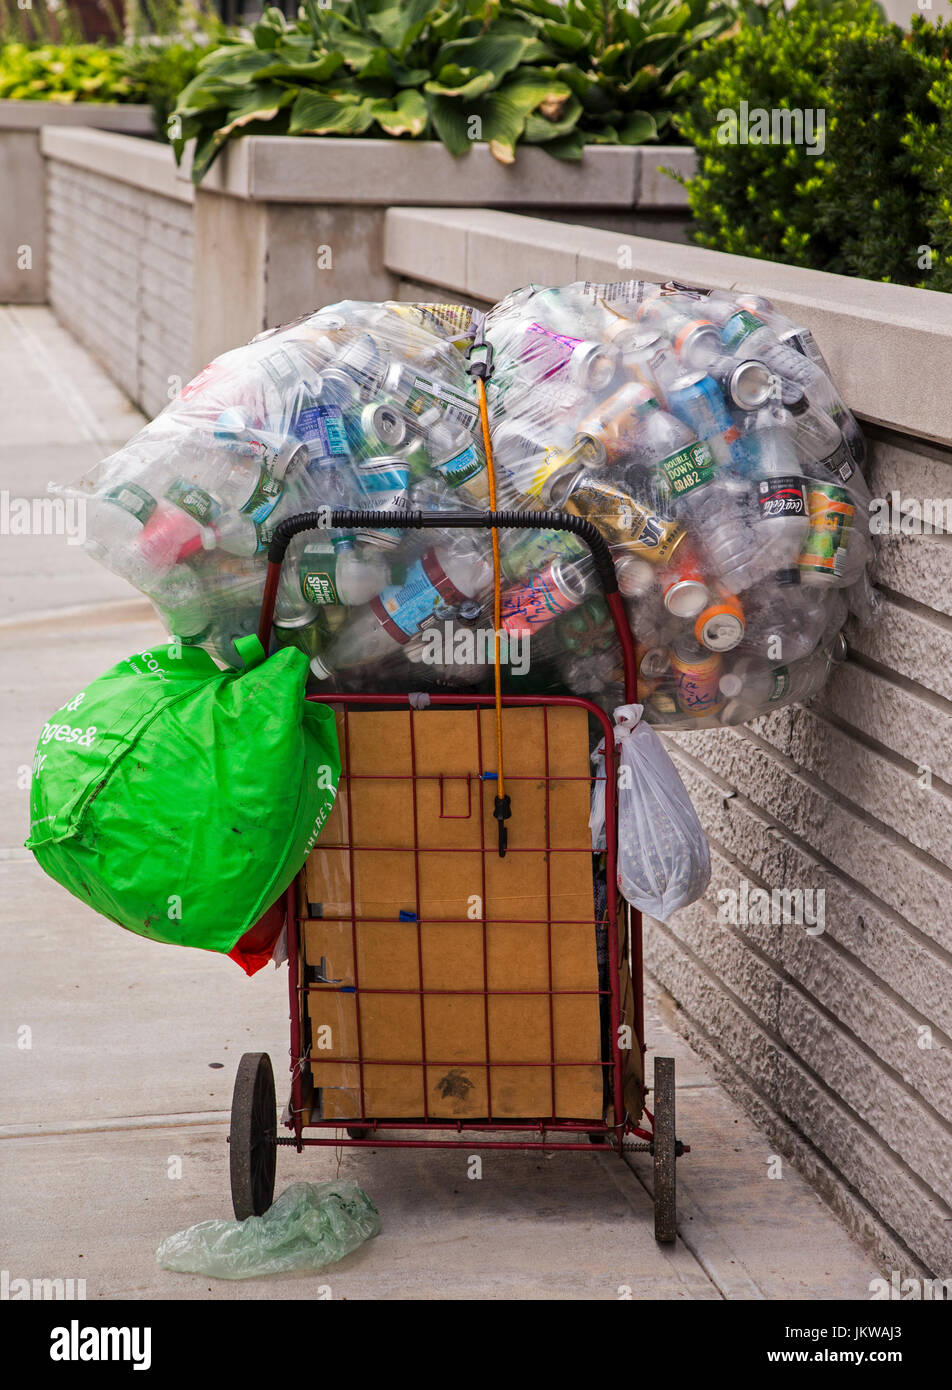 Shopping cart with aluminum cans and plastic bottles ready to be recycled - Stock Image